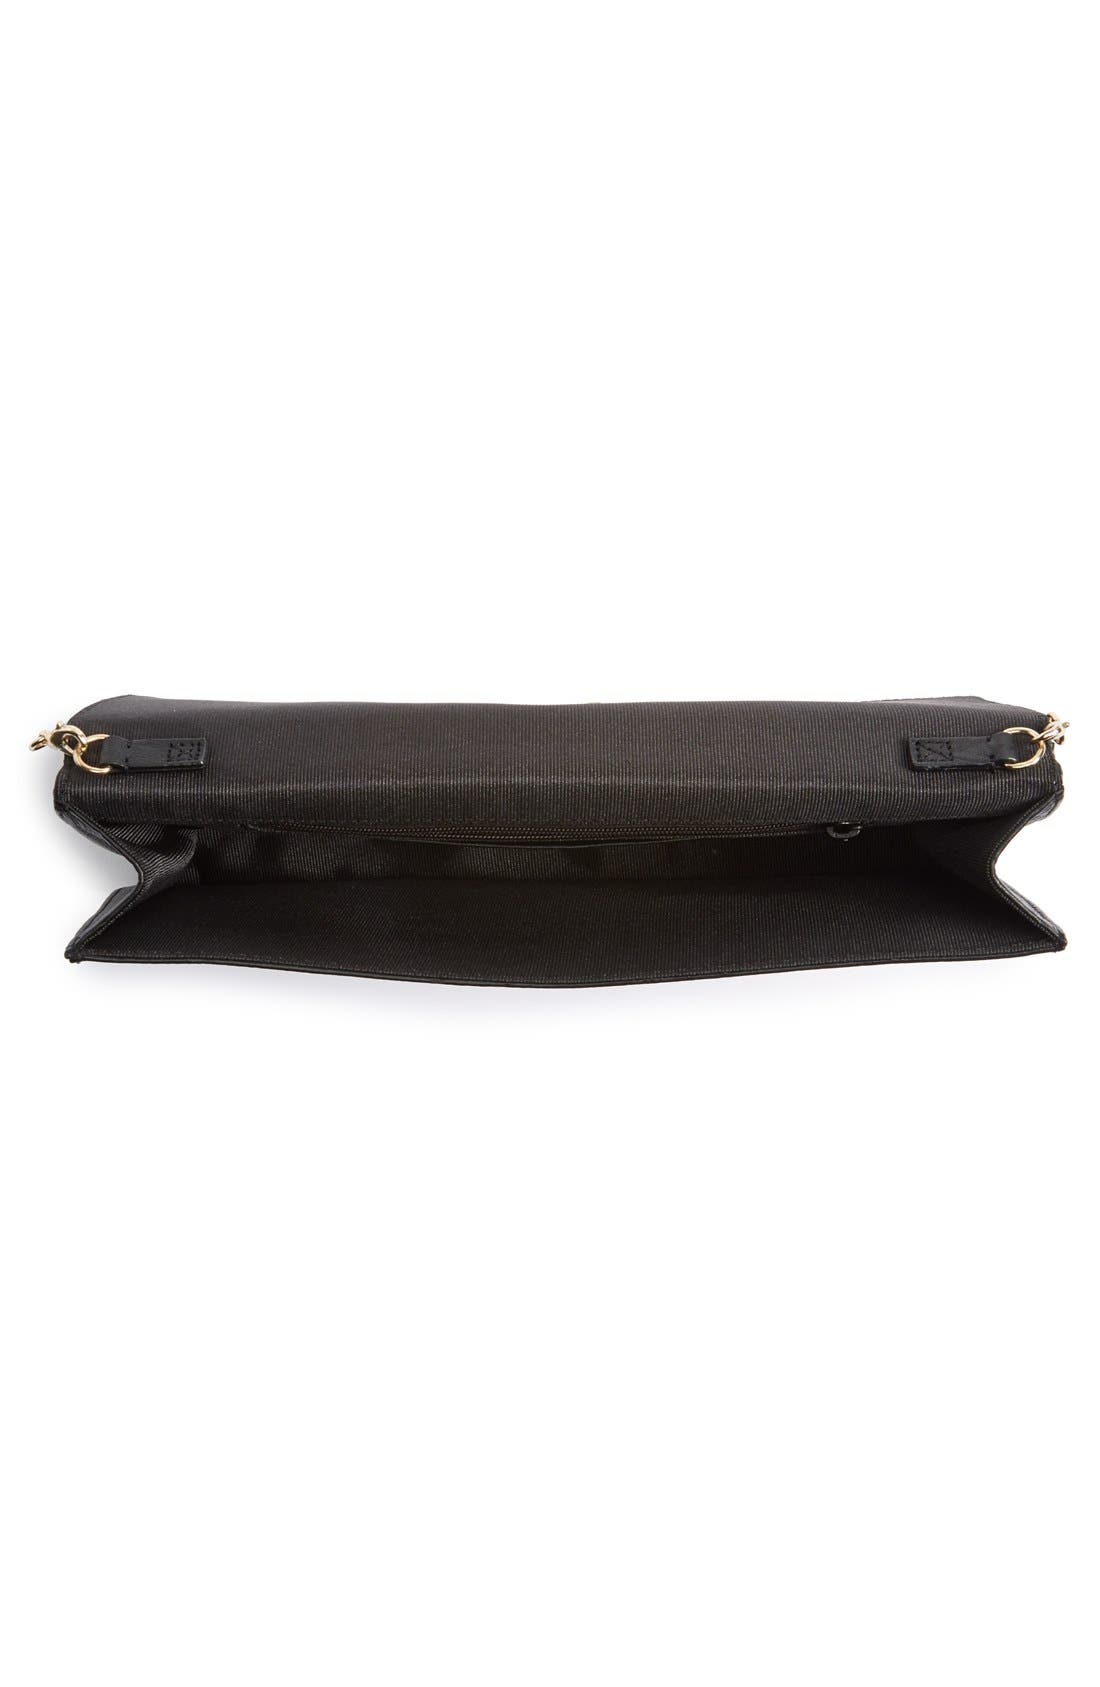 Leather Clutch,                             Alternate thumbnail 2, color,                             001